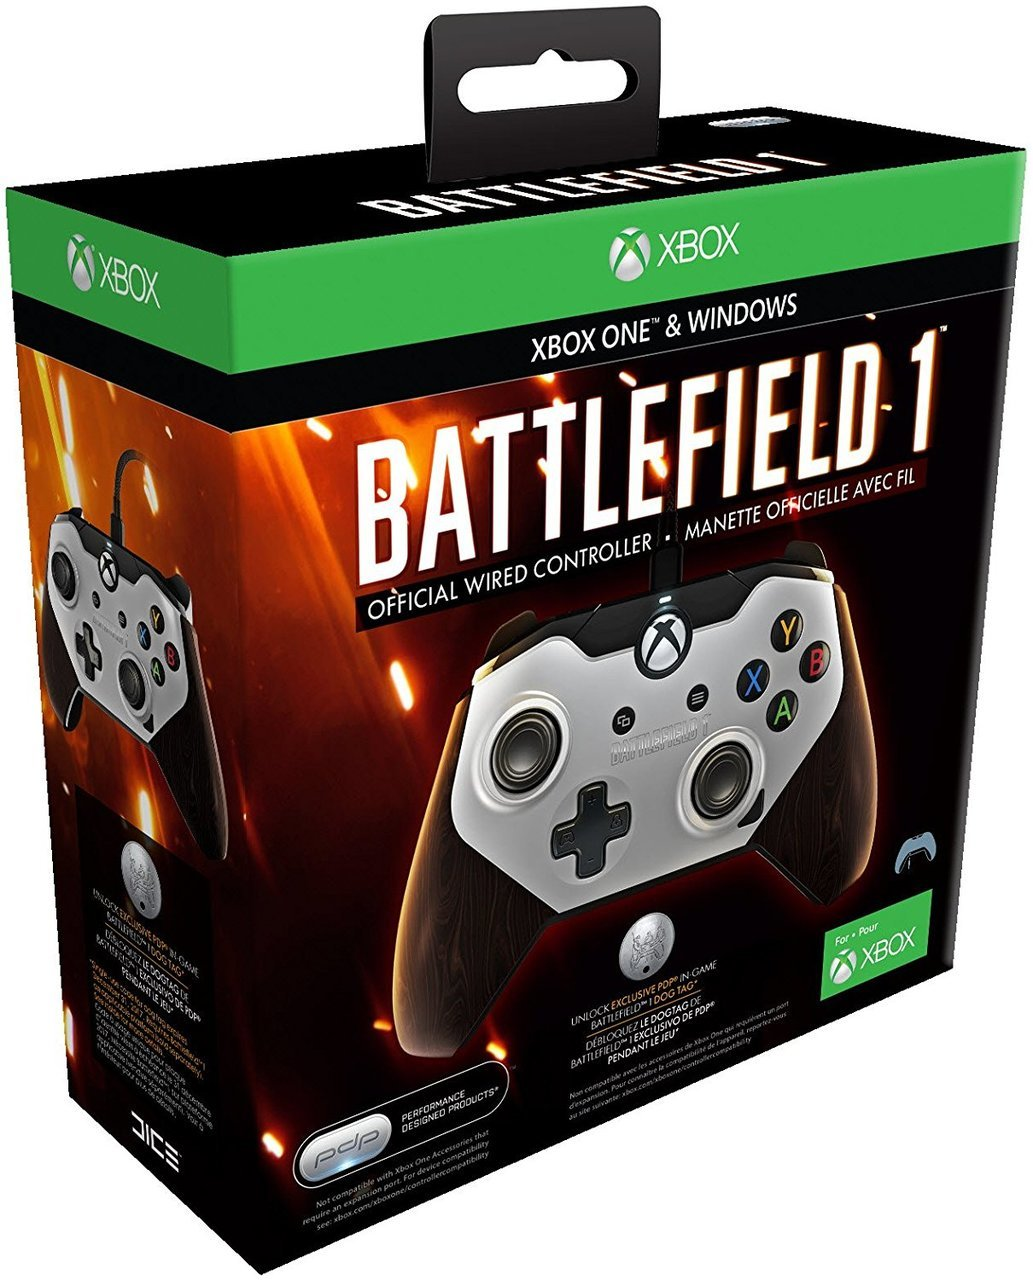 Battlefield 1 Official Wired Controller For Xbox One & Windows Brown  - PDP